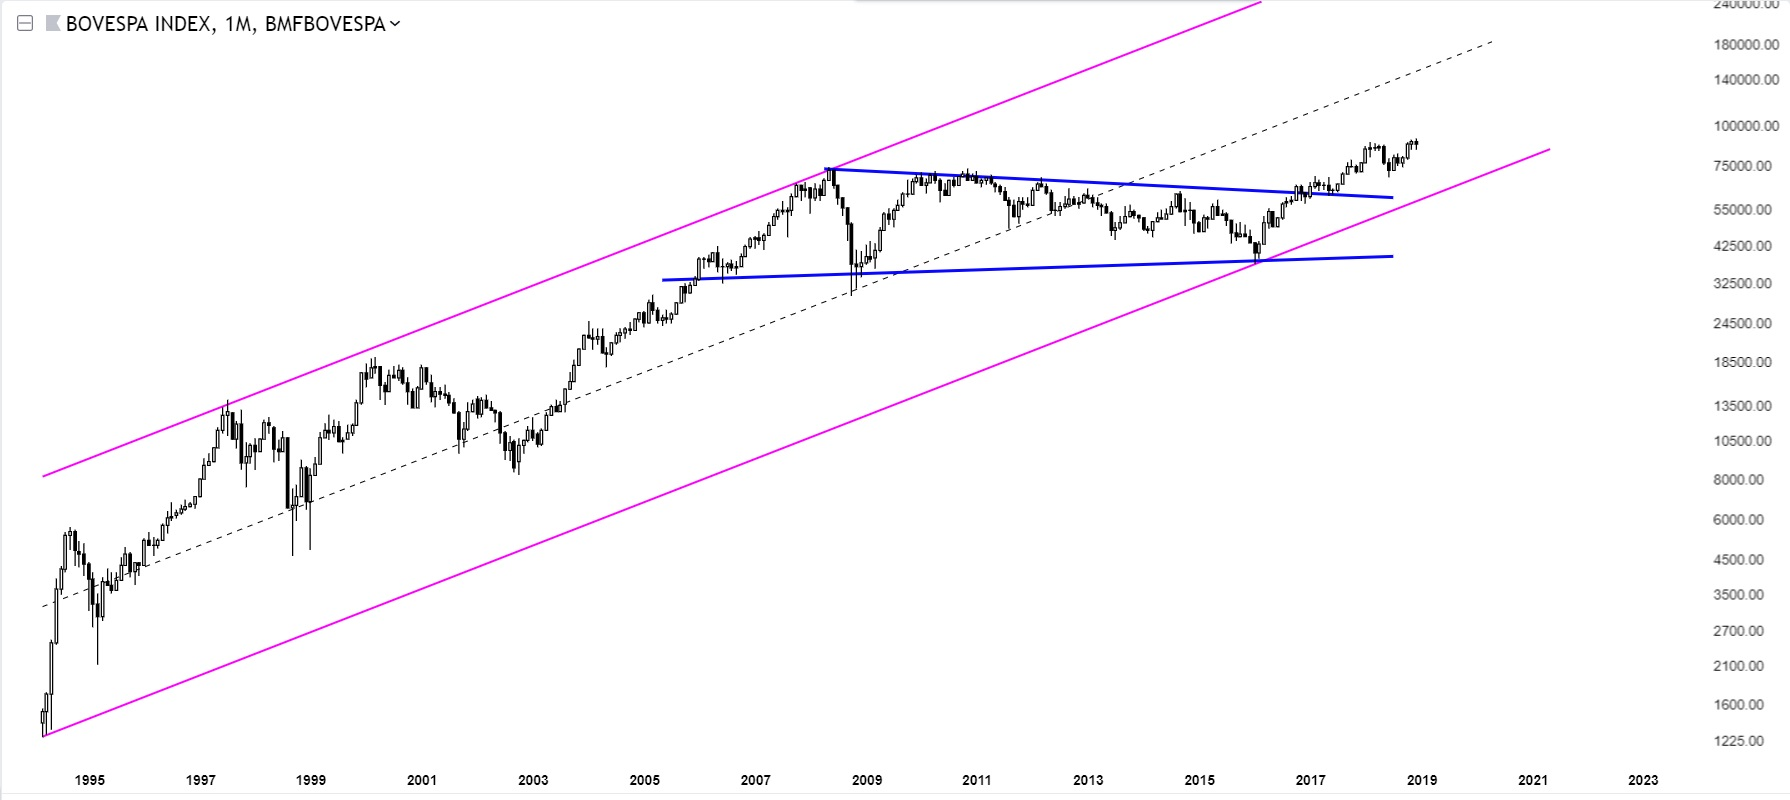 Charts Of International Stock Markets Bovespa